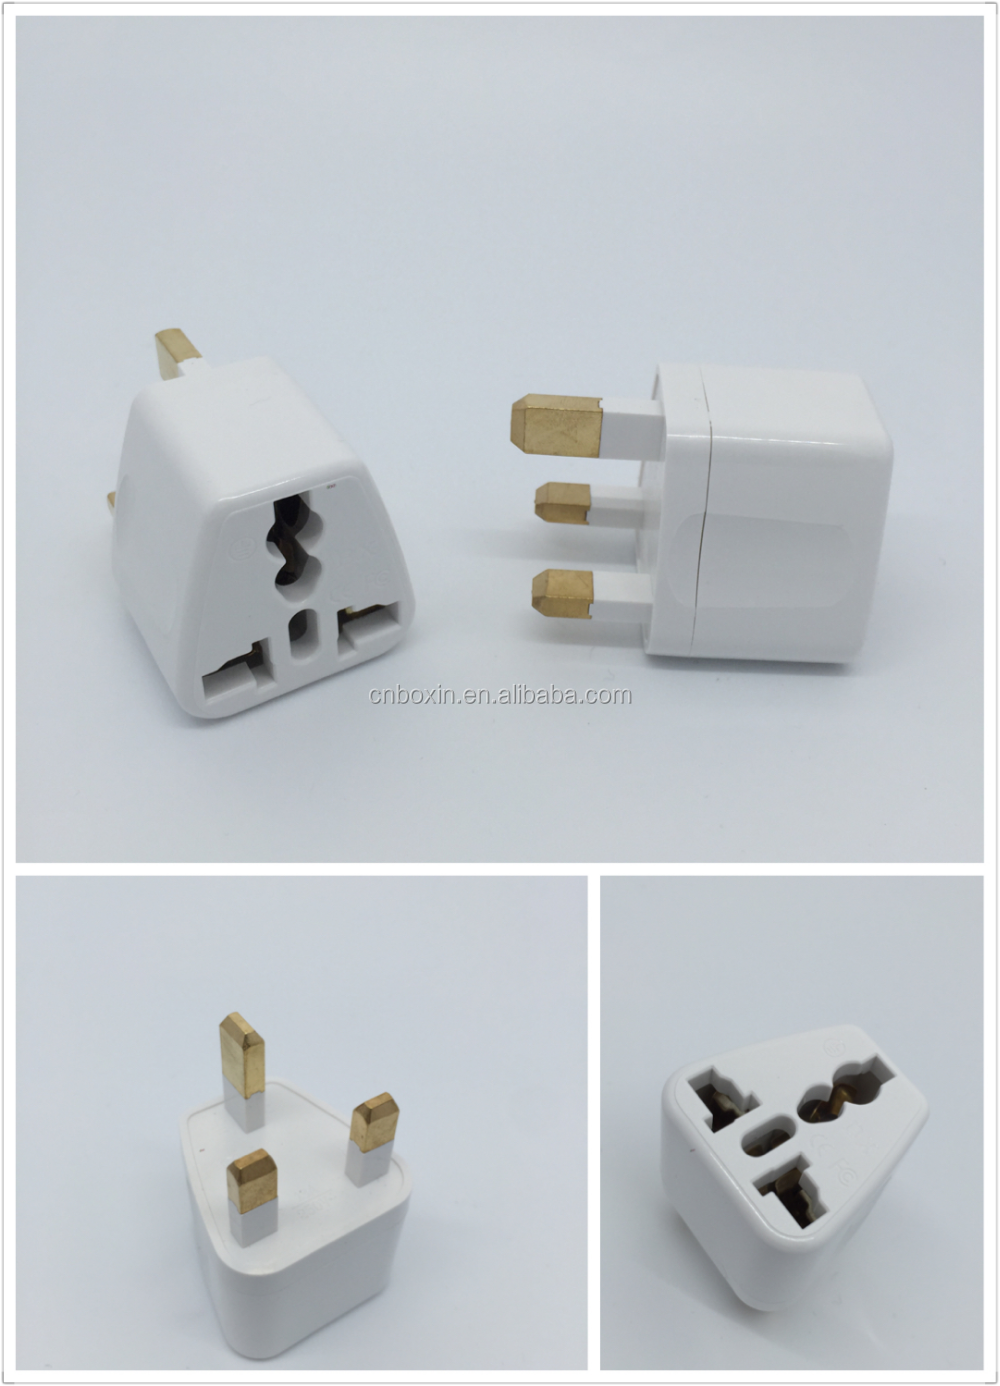 New products Hot copper pin mini universal to uk travel adaptor